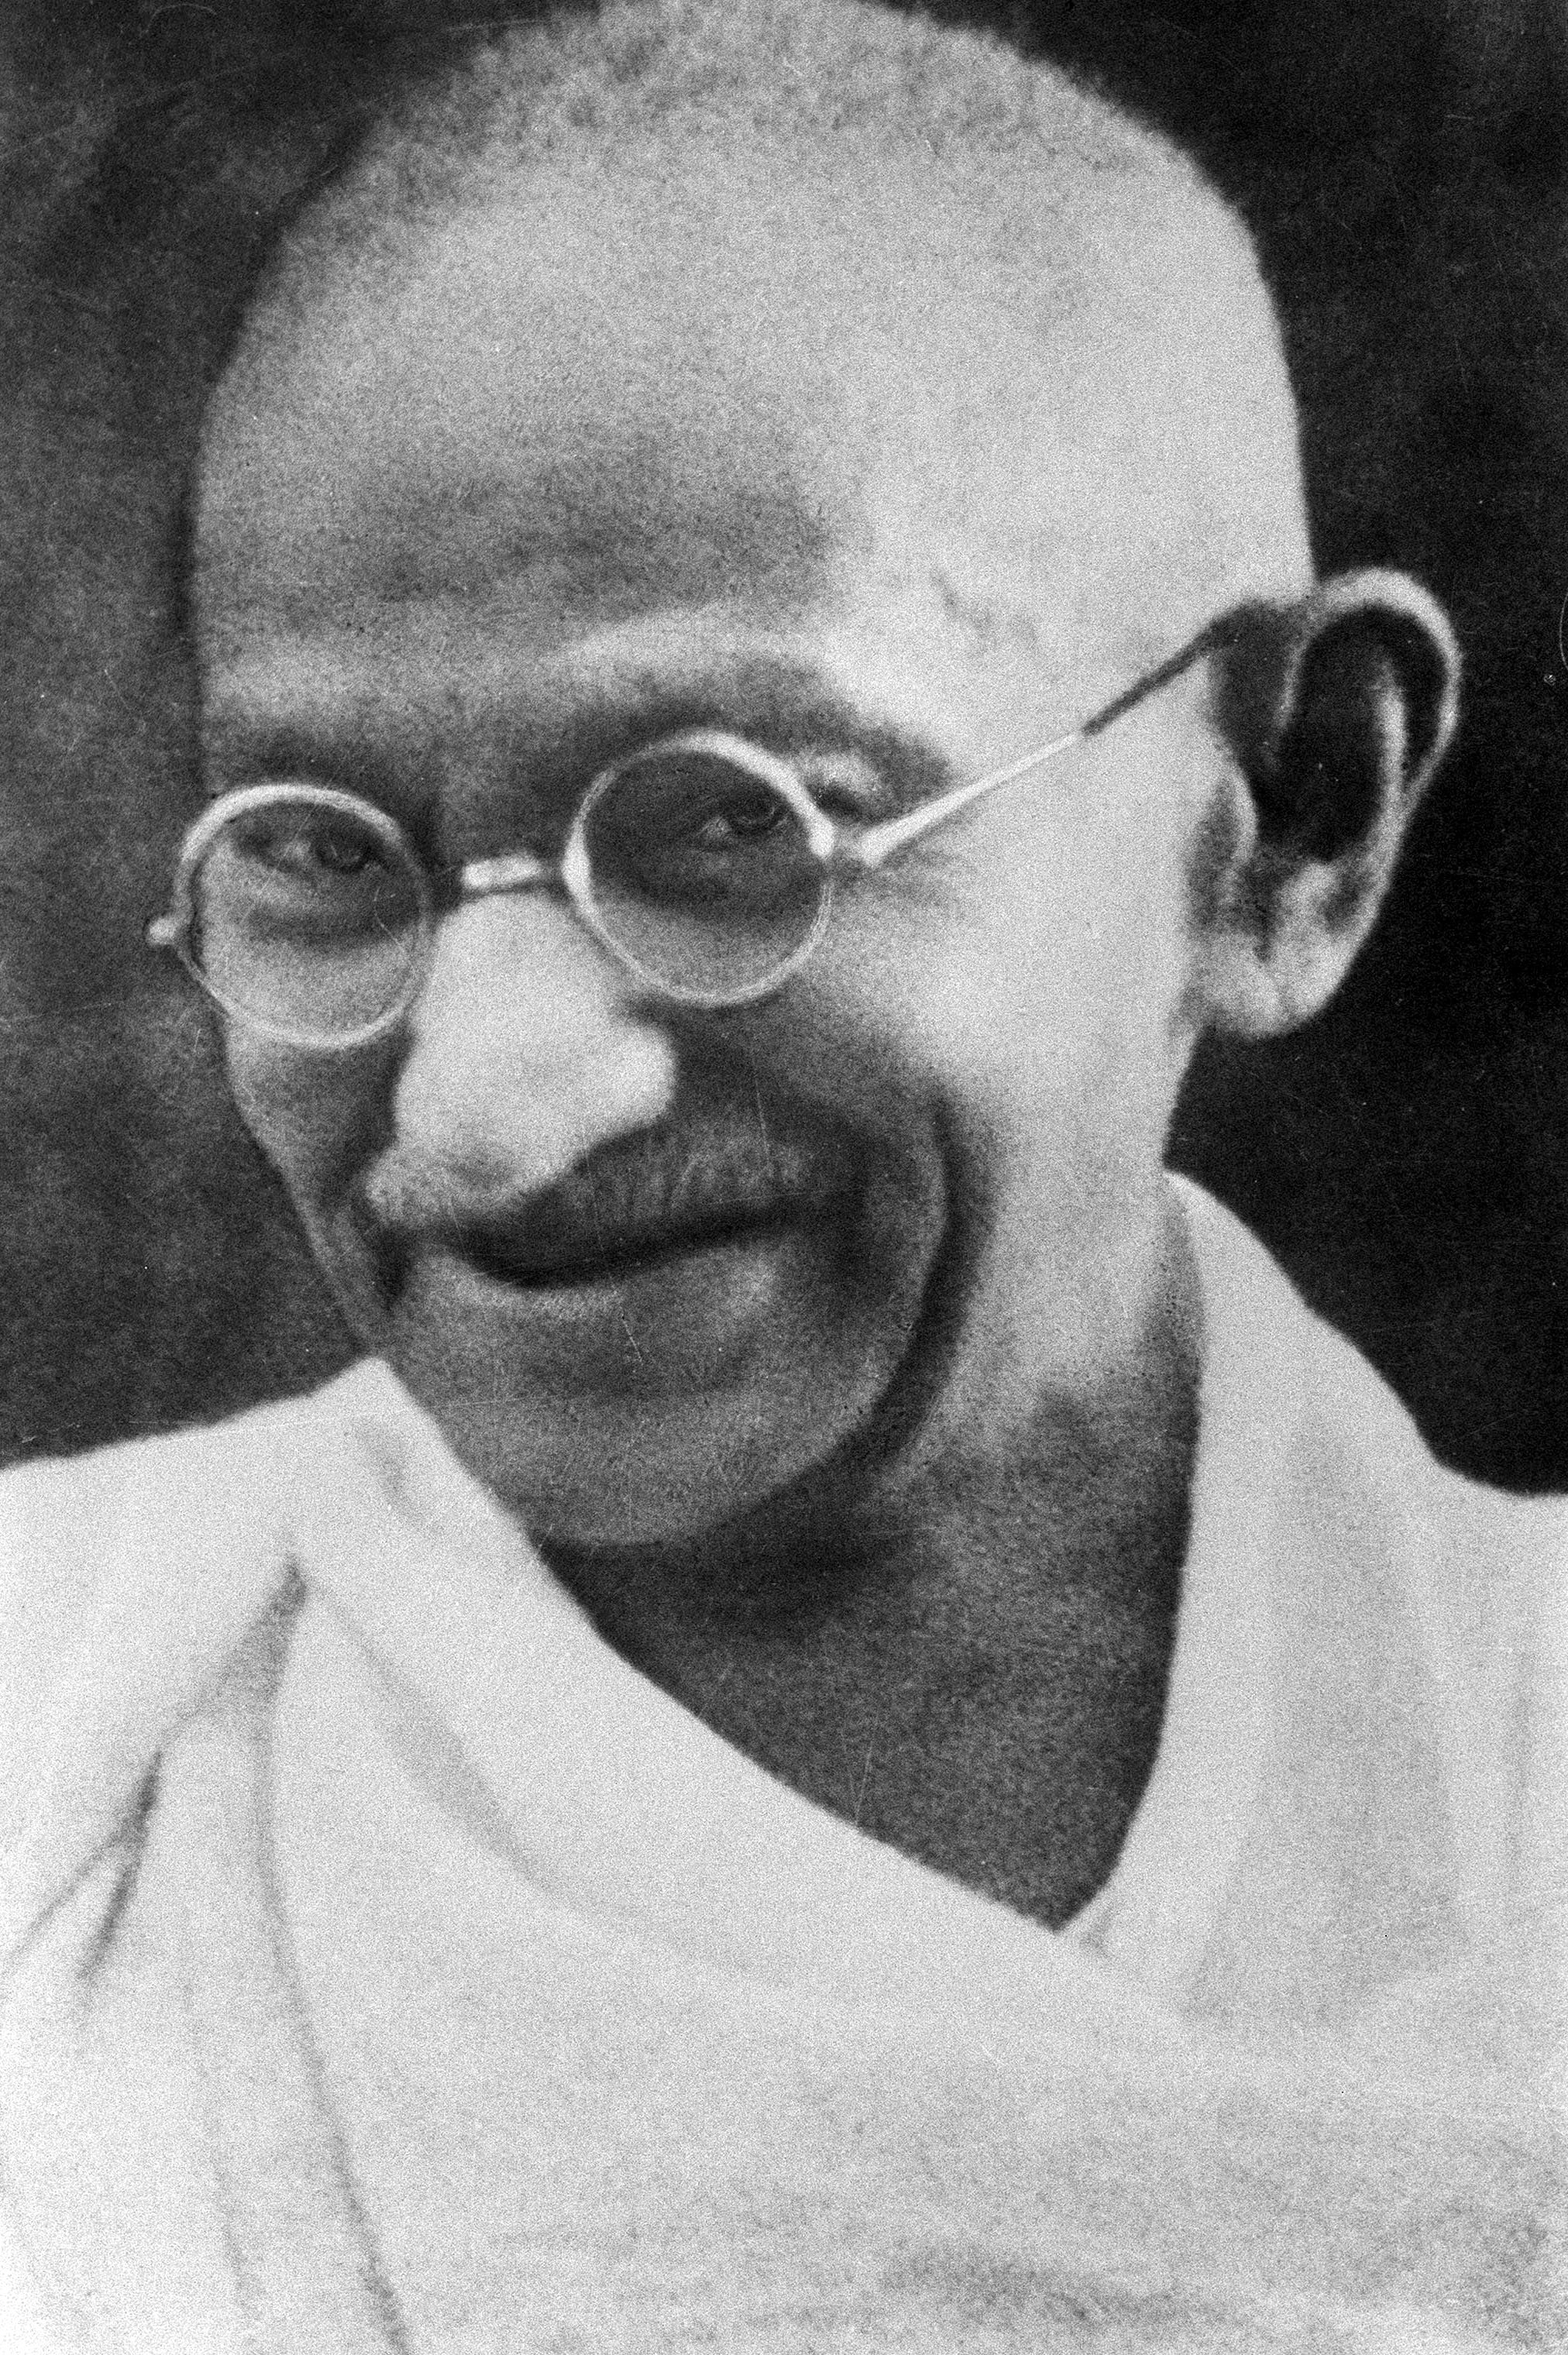 essay on gandhi s civil disobedience writework mohandas k gandhi